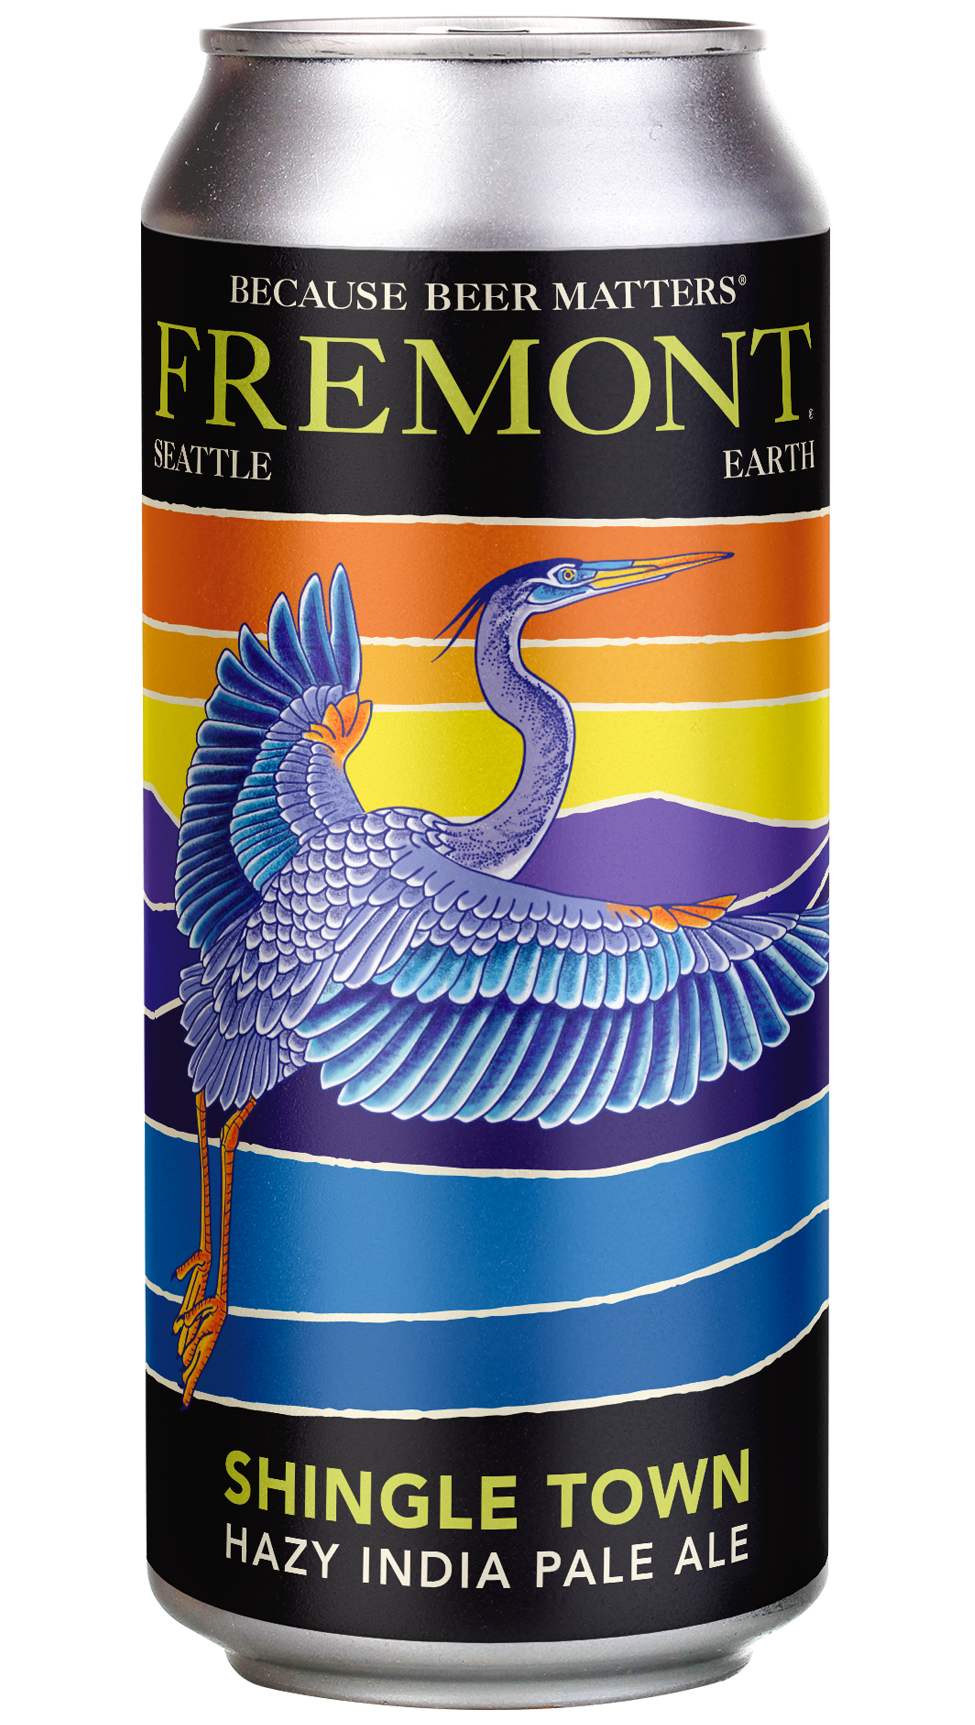 Fremont-Shingletown-16oz-can.png